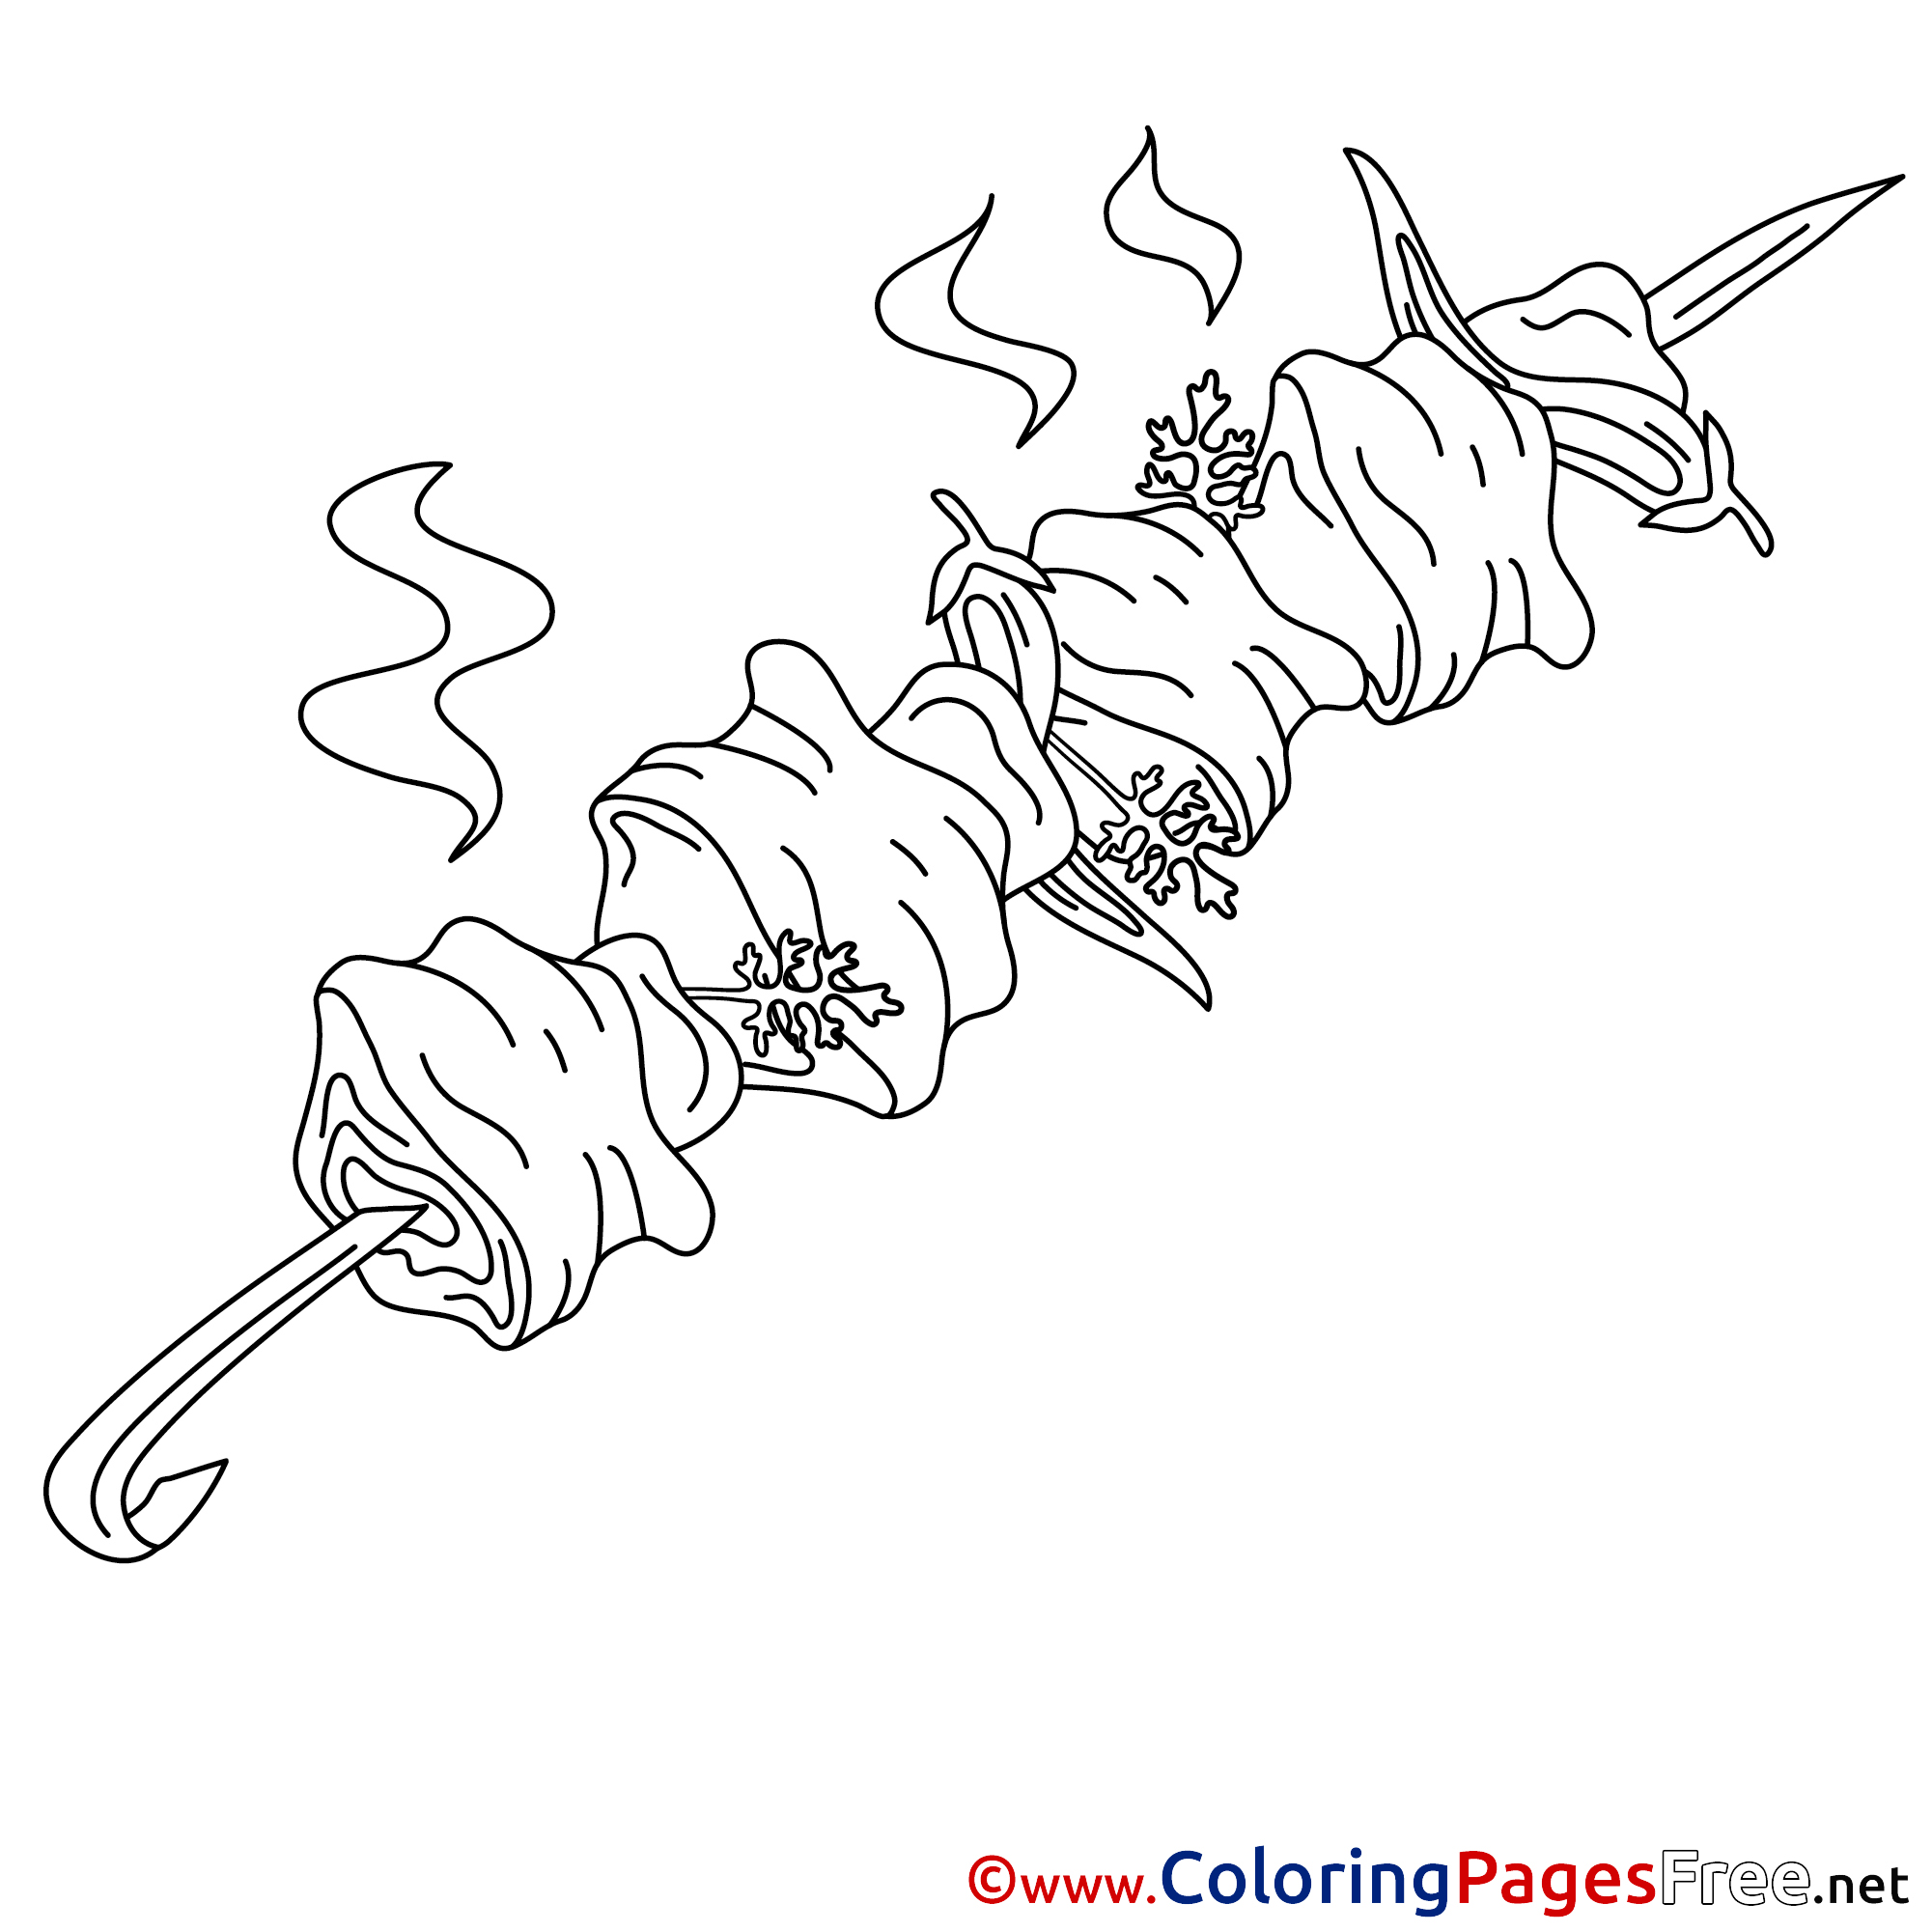 Coloring pages download - Kebab For Free Coloring Pages Download